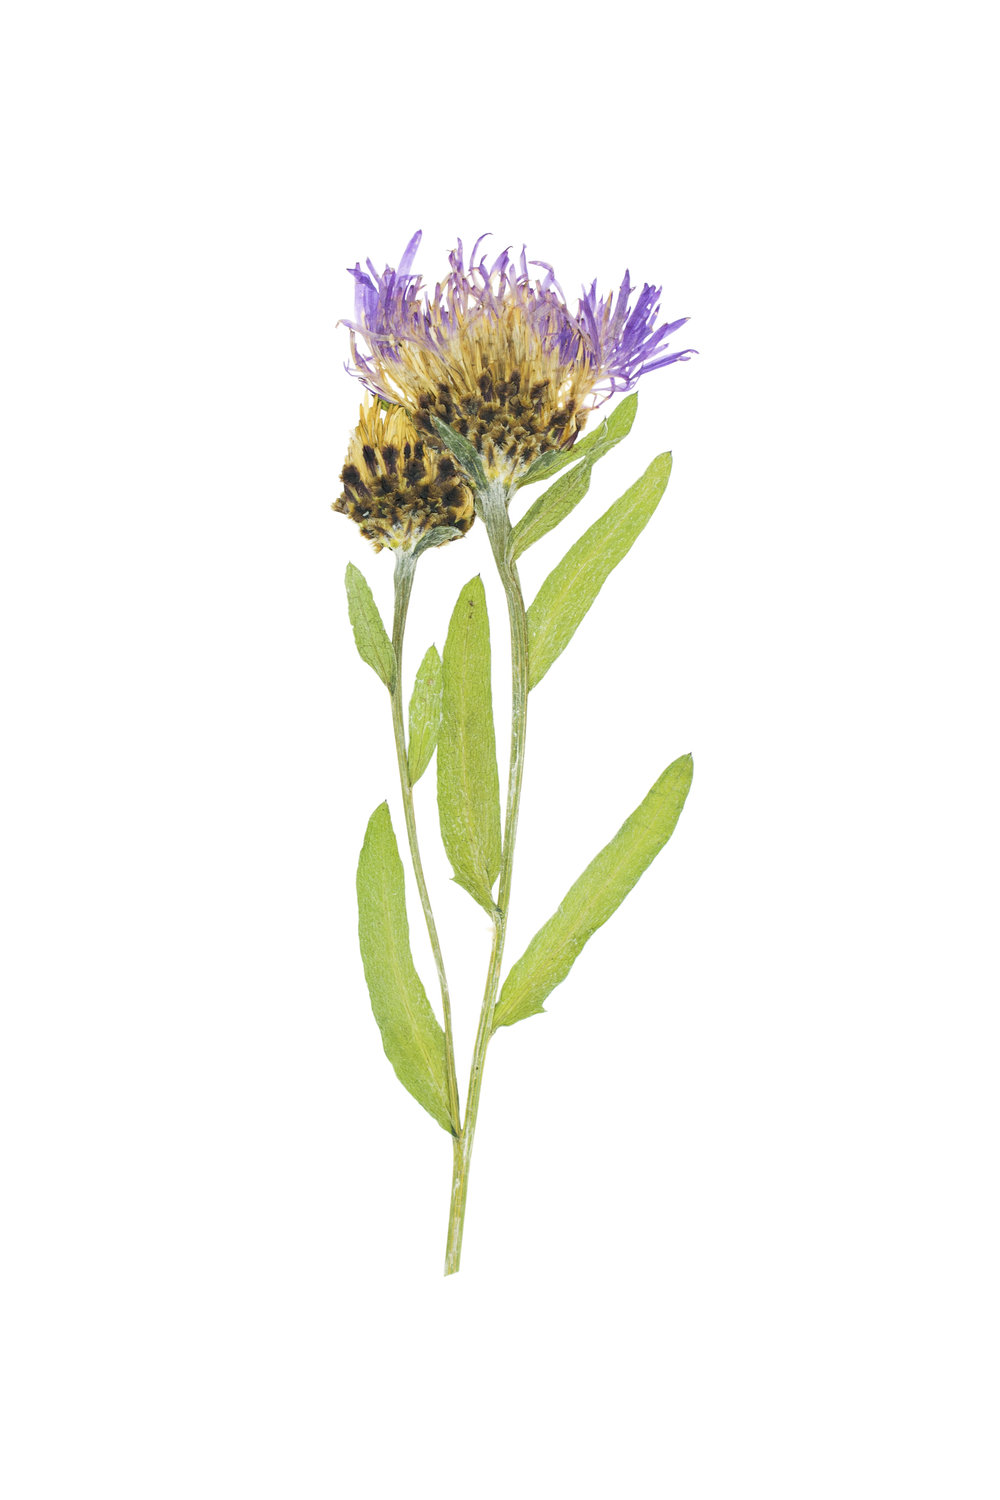 Brownray Knapweed / Centaurea jacea